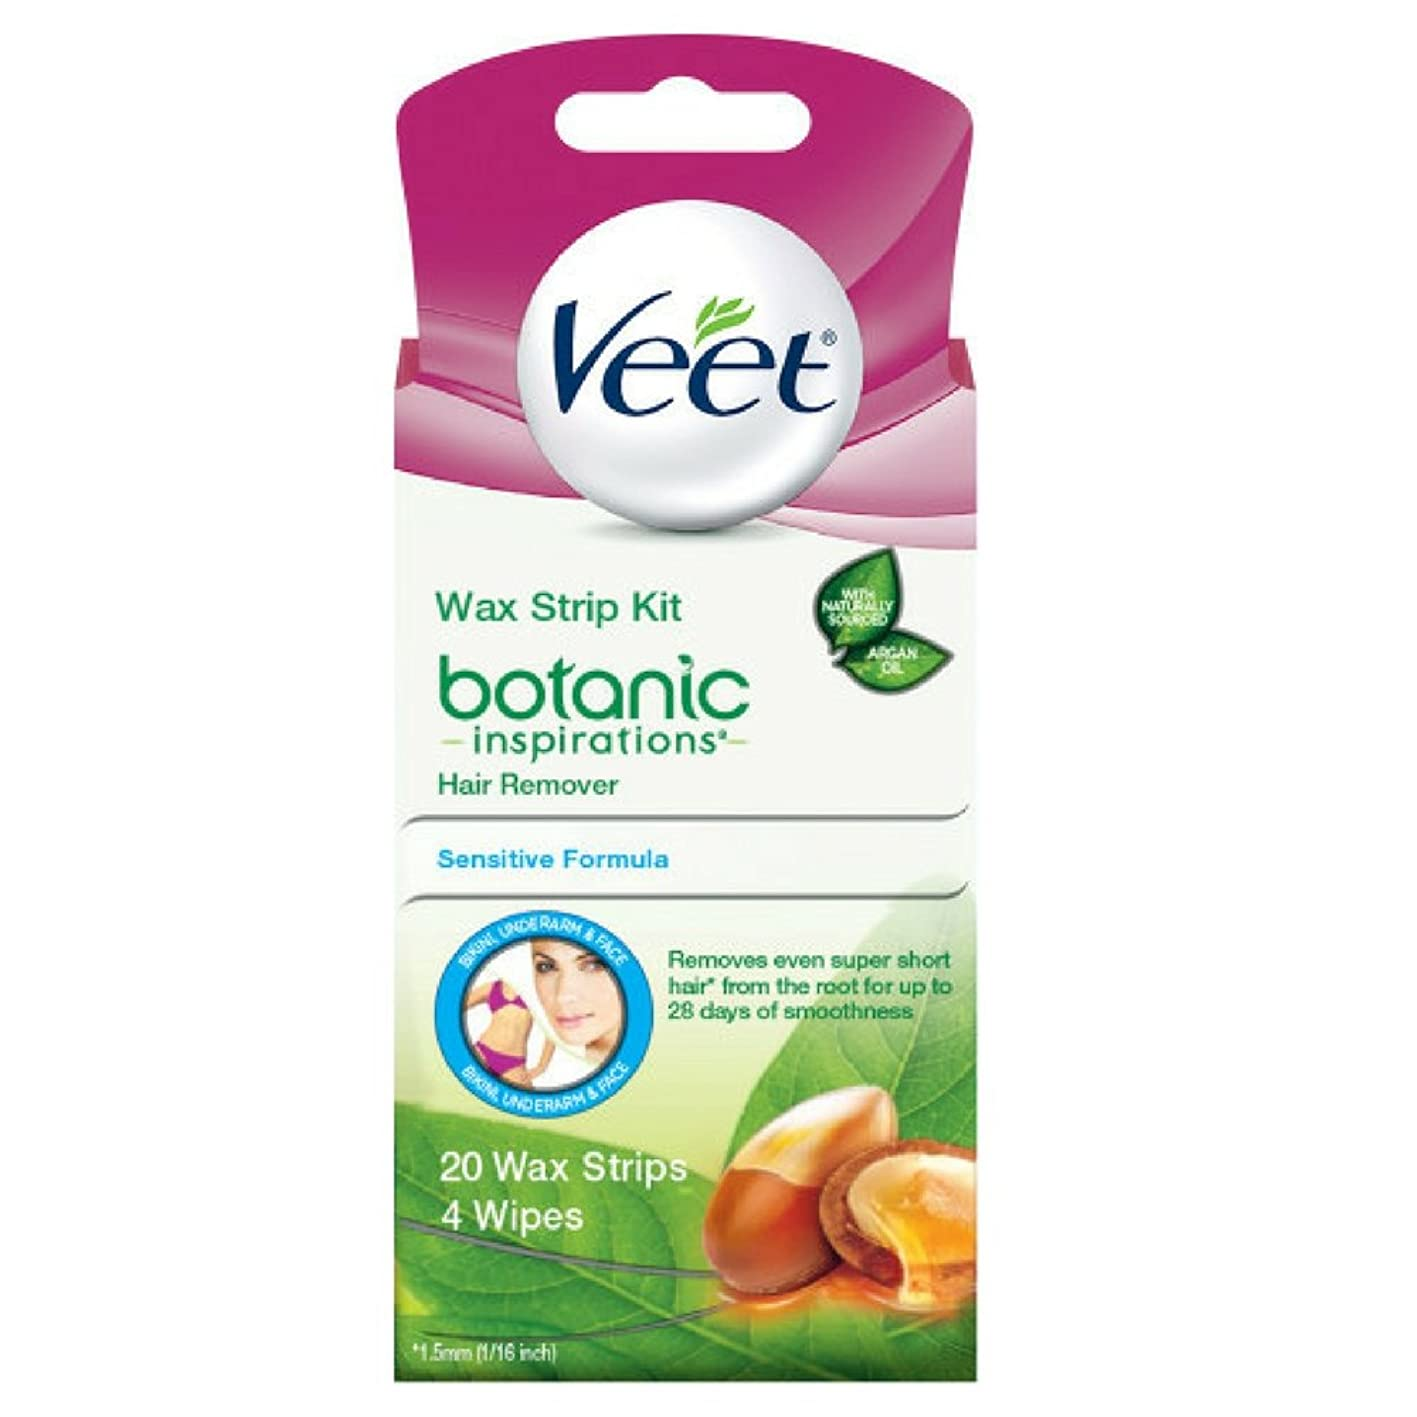 Veet Ready-To-Use Wax Strips Hair Remover - 20 CT uorjnvsbjpy550